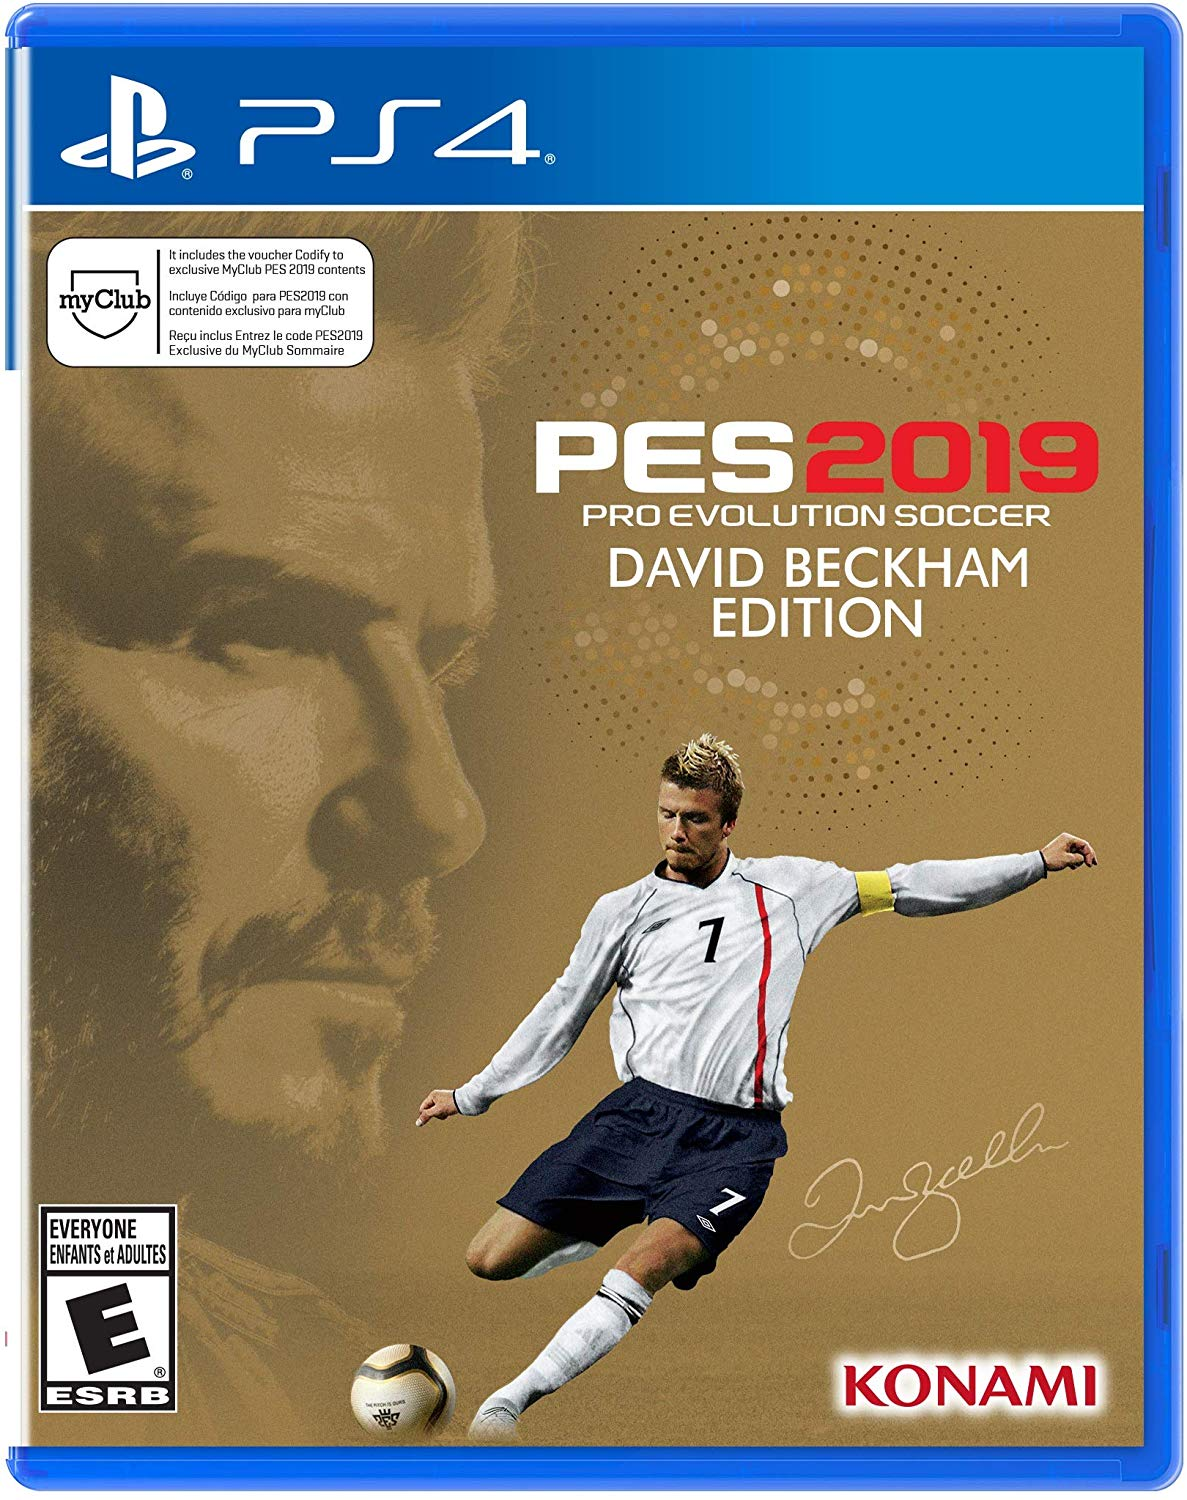 PS4 PES Pro-Evolution Soccer 2019 David Beckham Edition